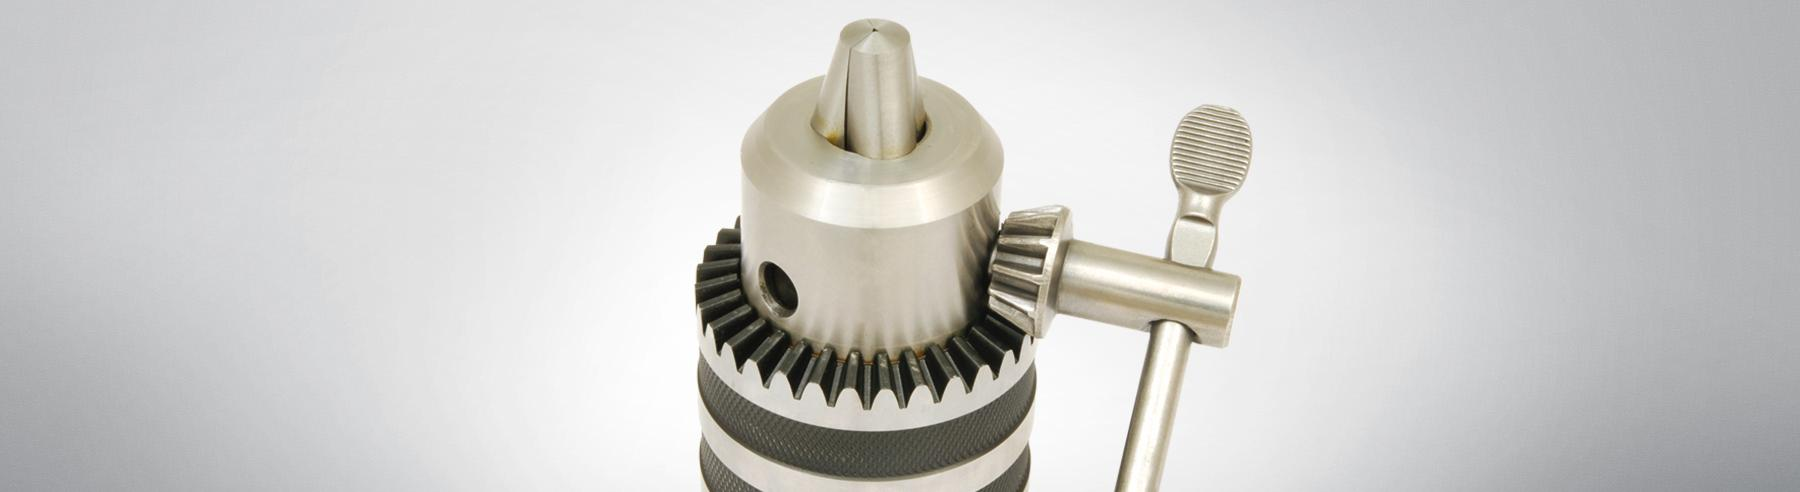 Drilling and milling accessories